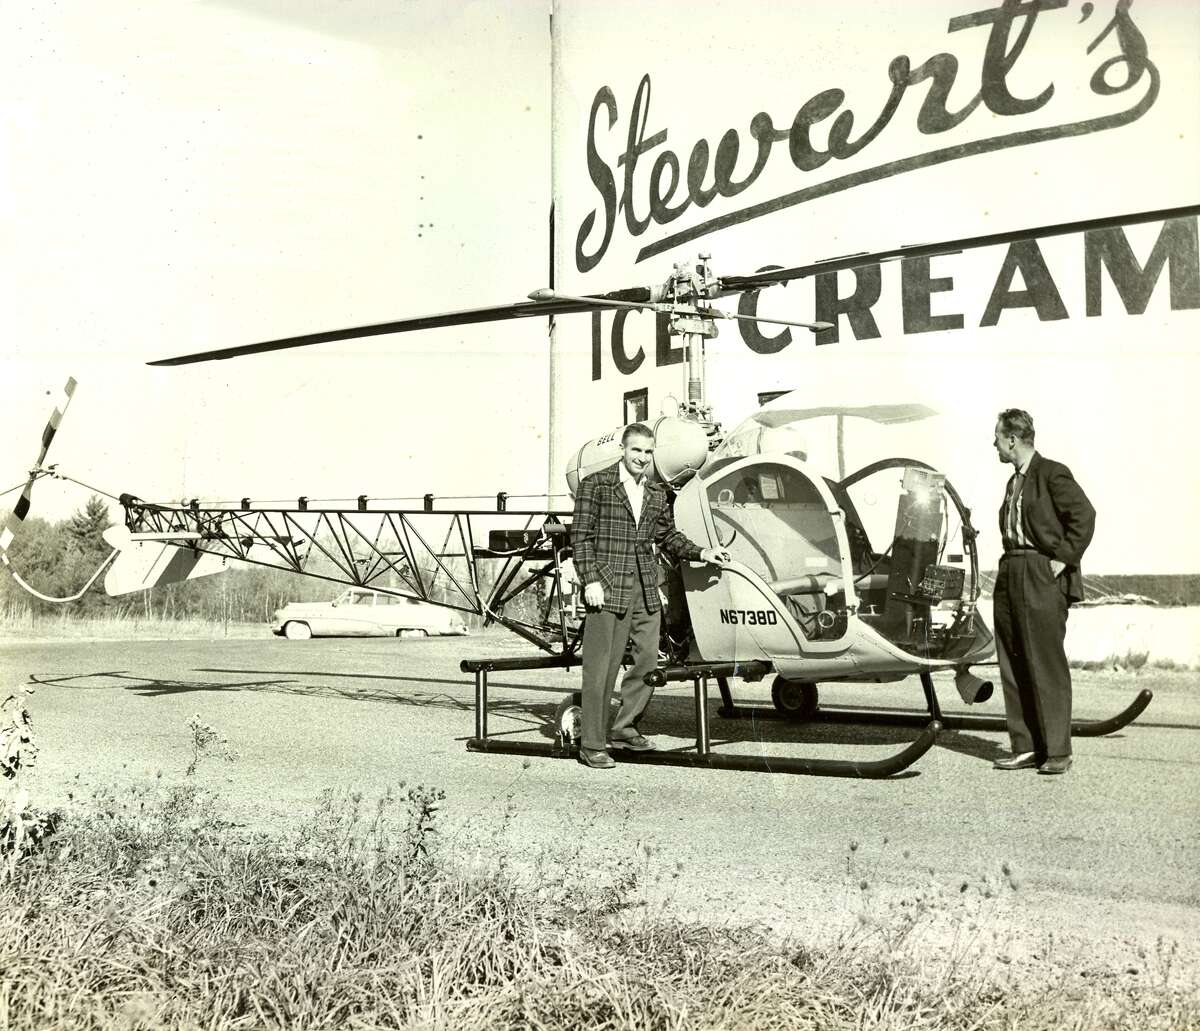 1950s: A Stewarts Shops helicopter dropped leaflets called